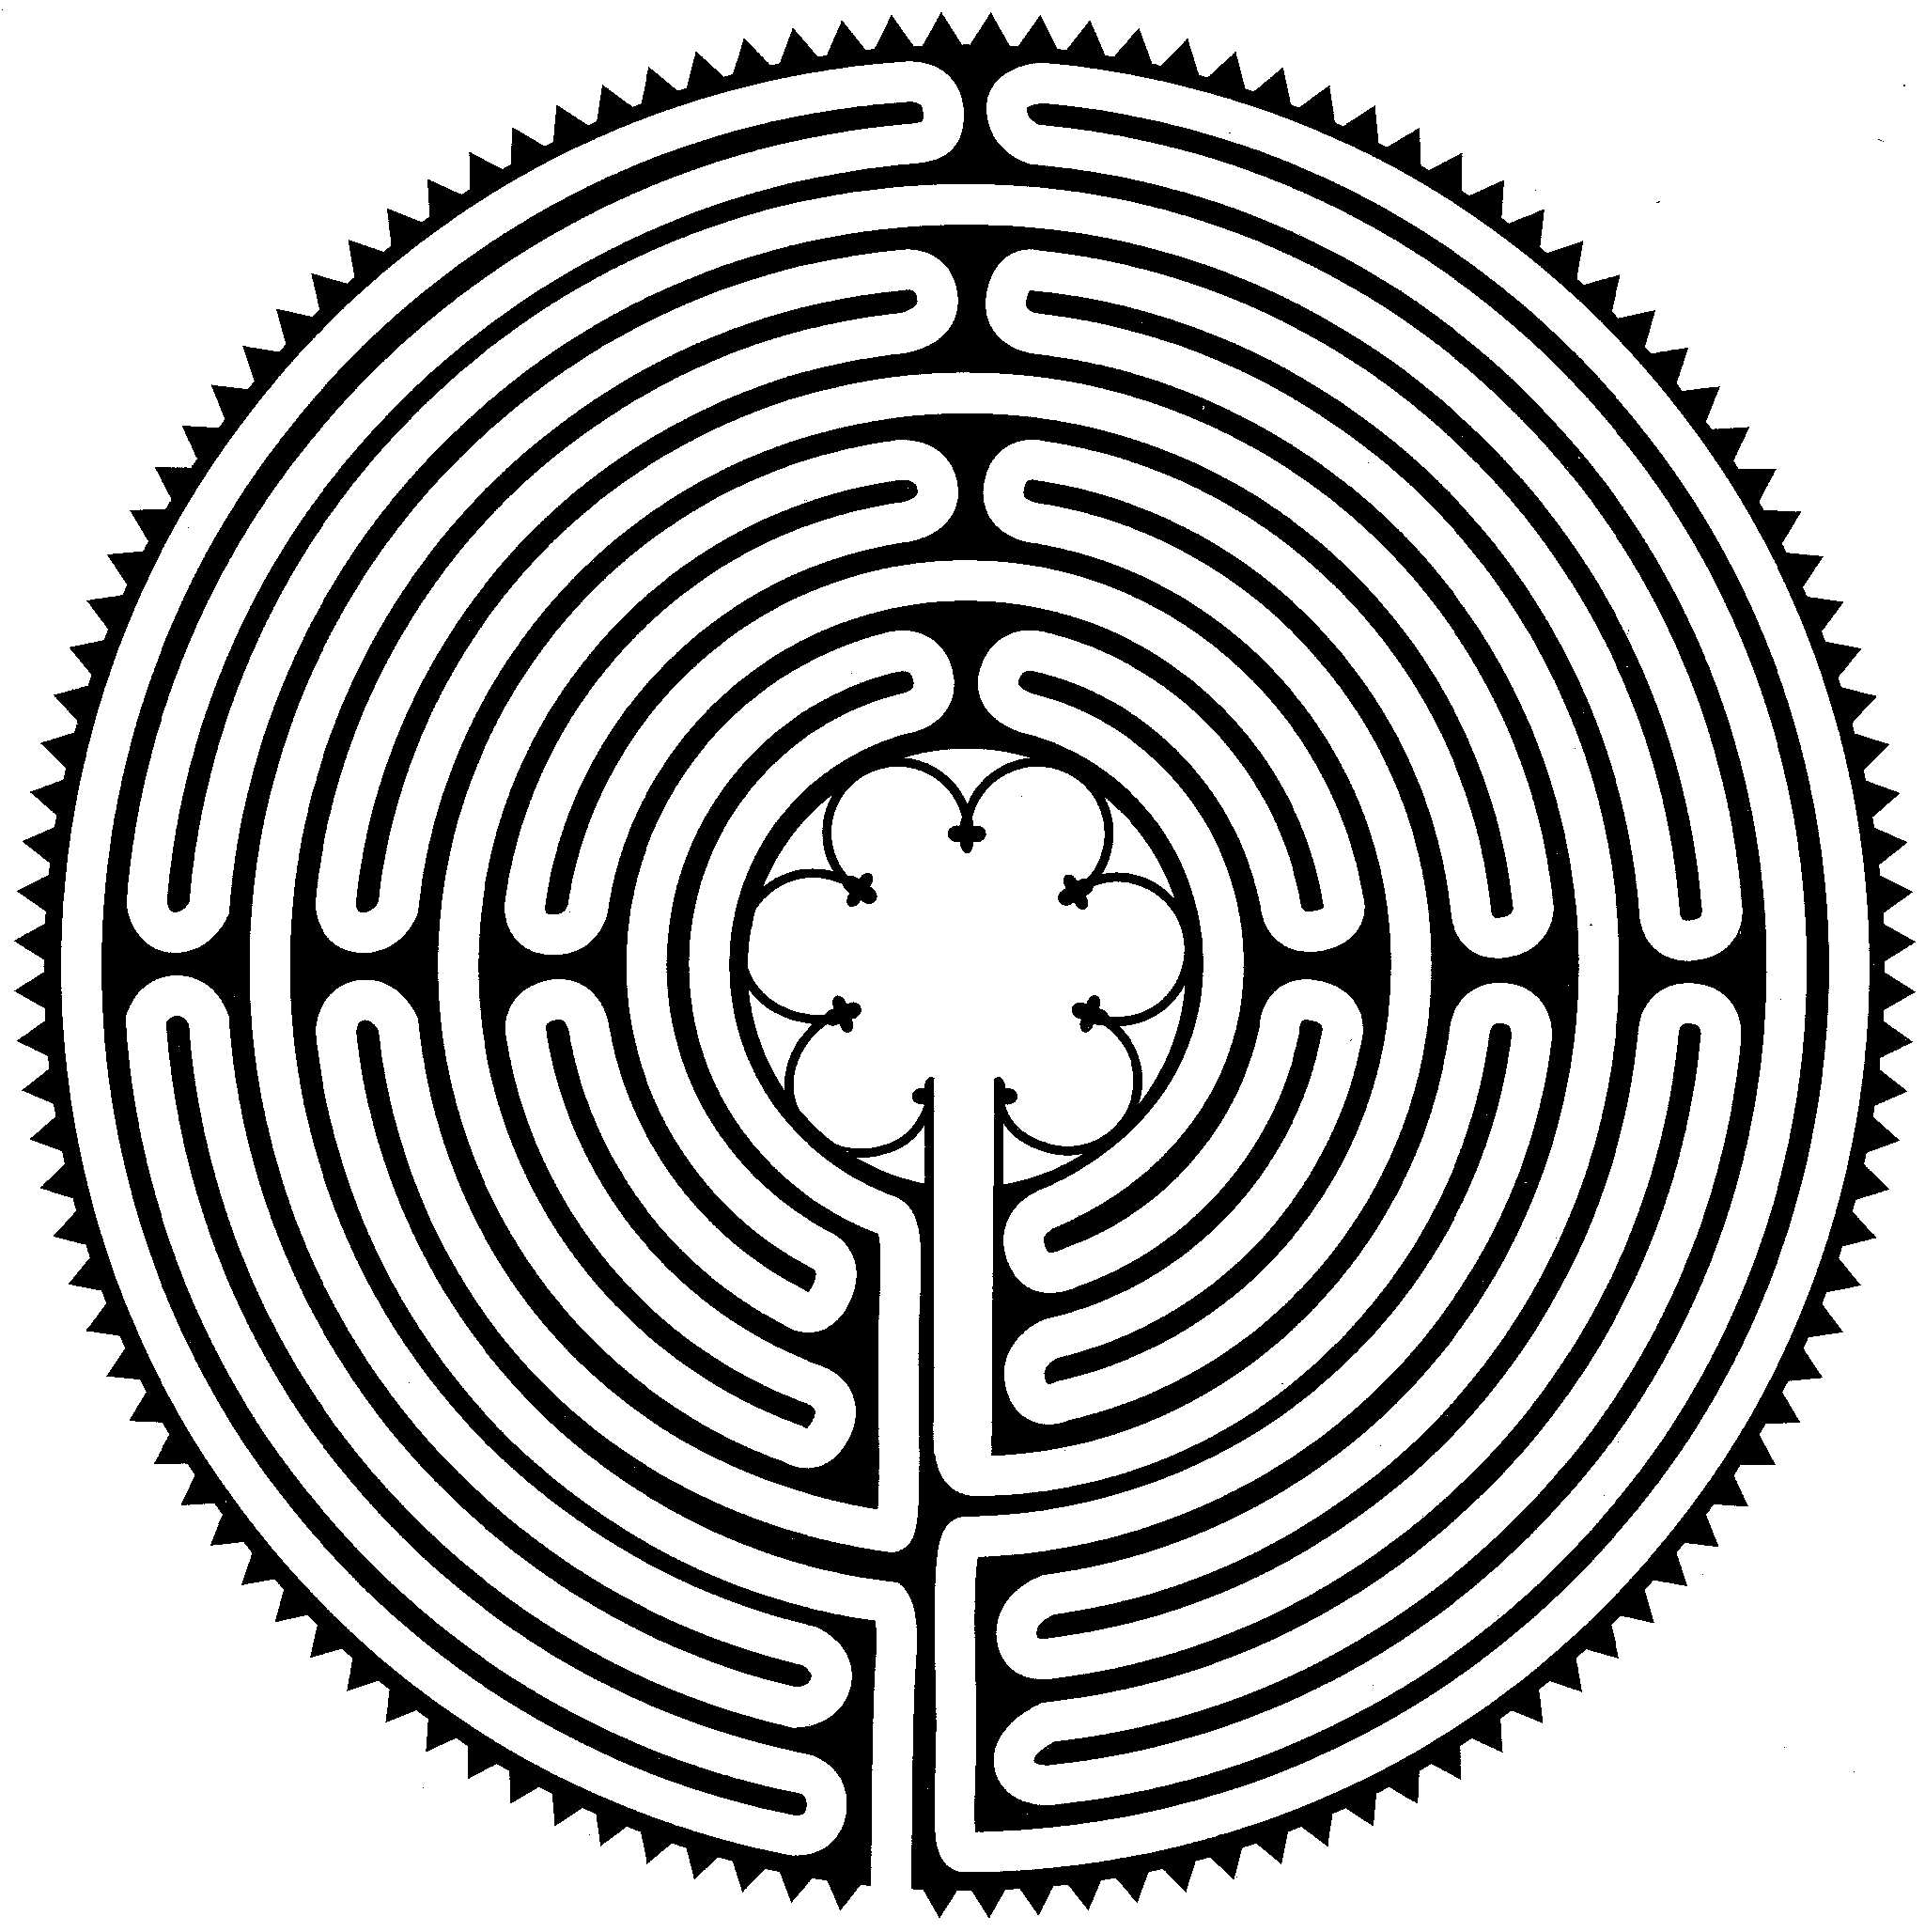 Walking the Spiritual Labyrinth | From the Still Point